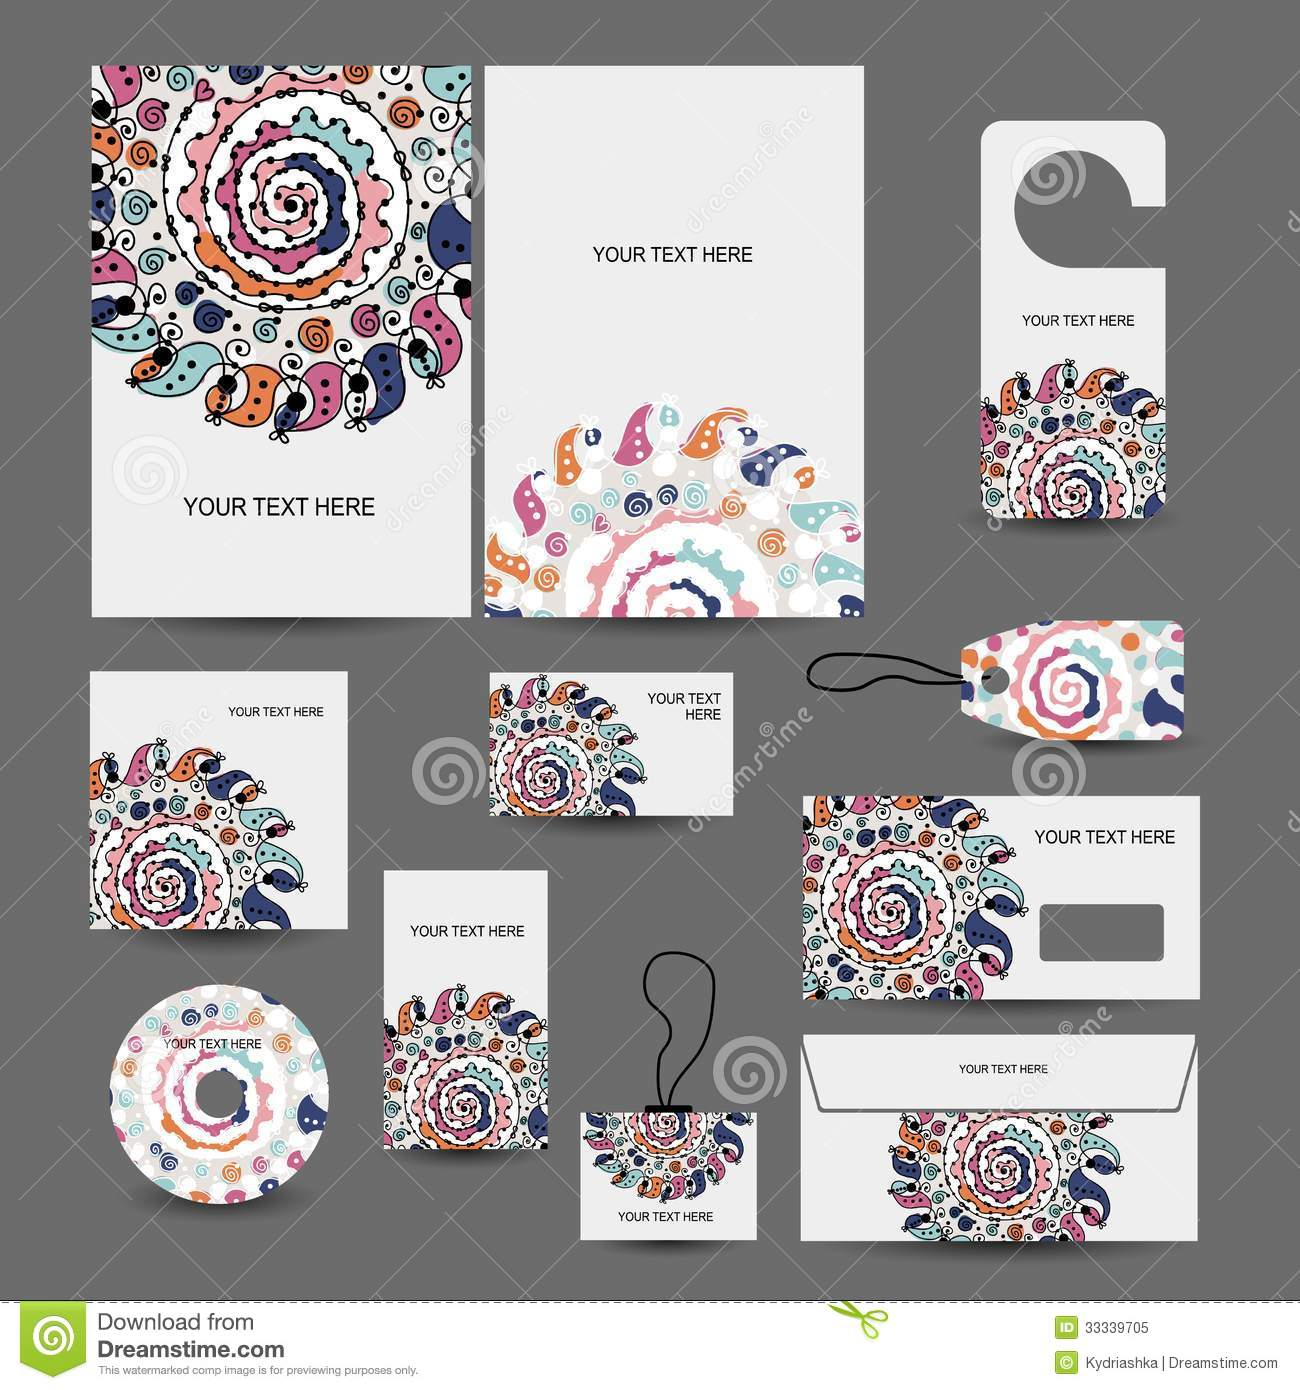 File Decoration Designs: Corporate Business Style Design: Folder, Labels, Royalty